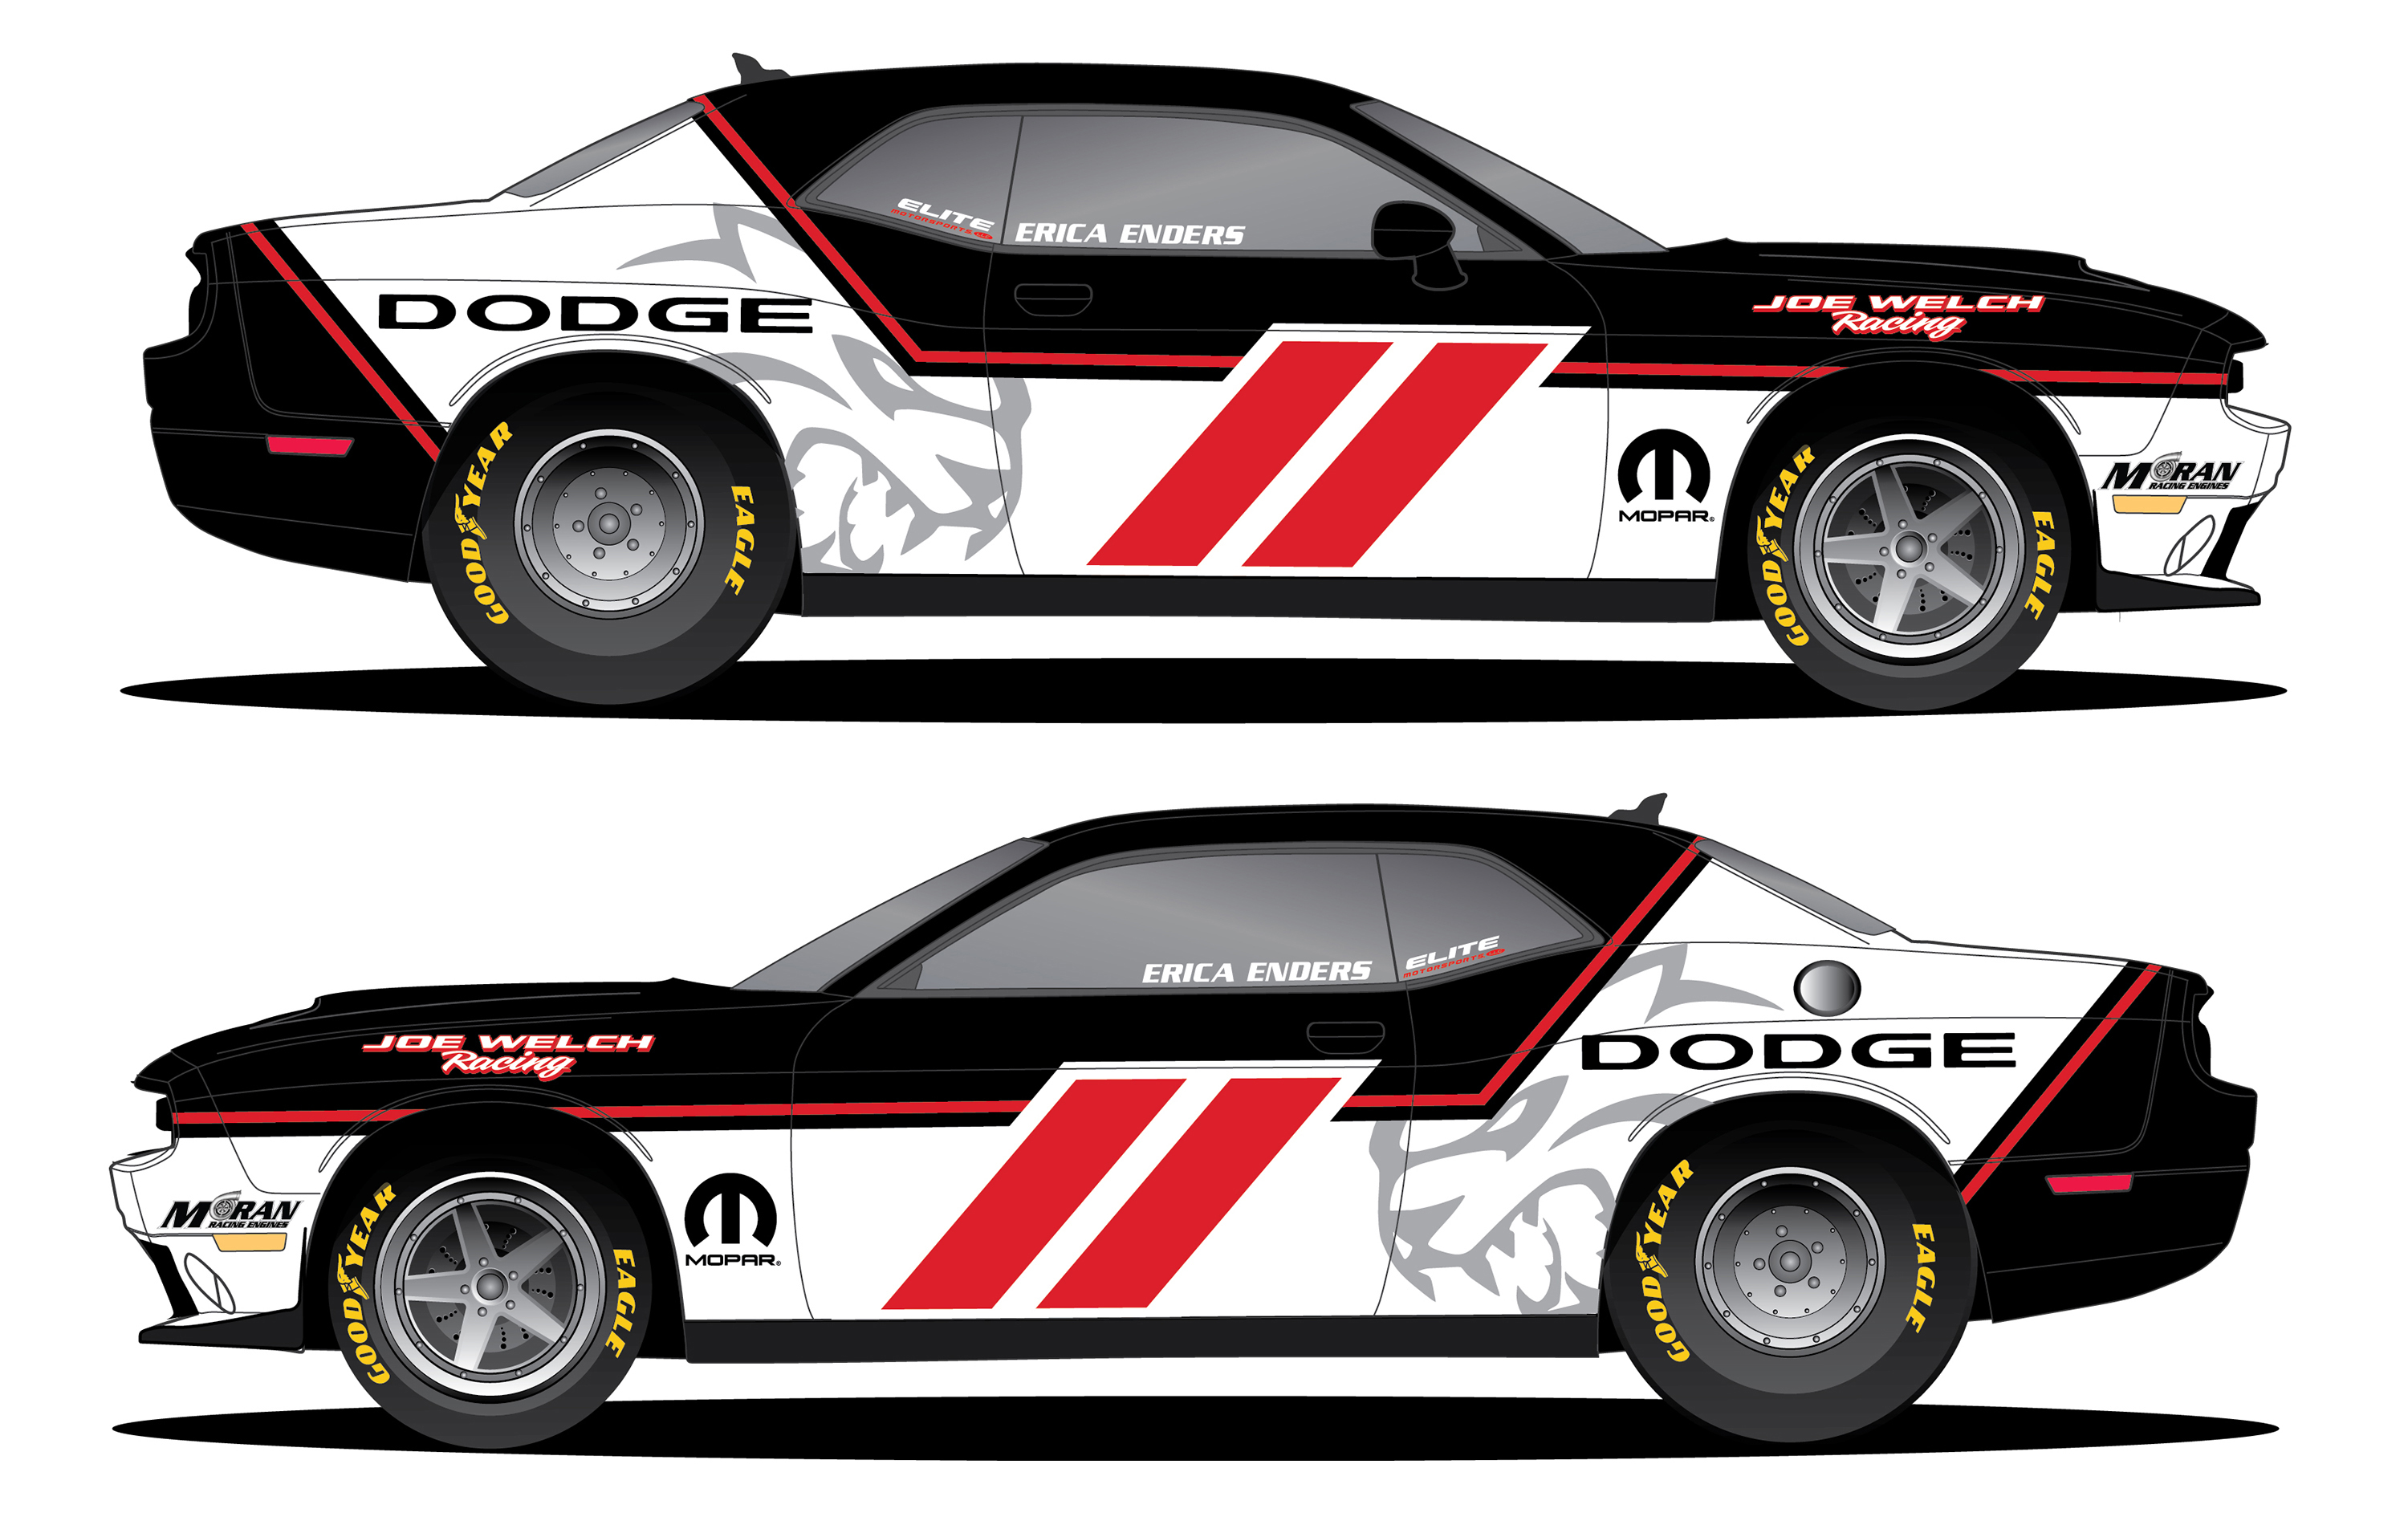 Dodge Dart 2017 All New Car Release Date 2019 2020 98 Toyota Camry Engine Diagram Torque Wfo Radio Motorsports Podcast Mopar To Highlight Sportsman Racing At Nhra